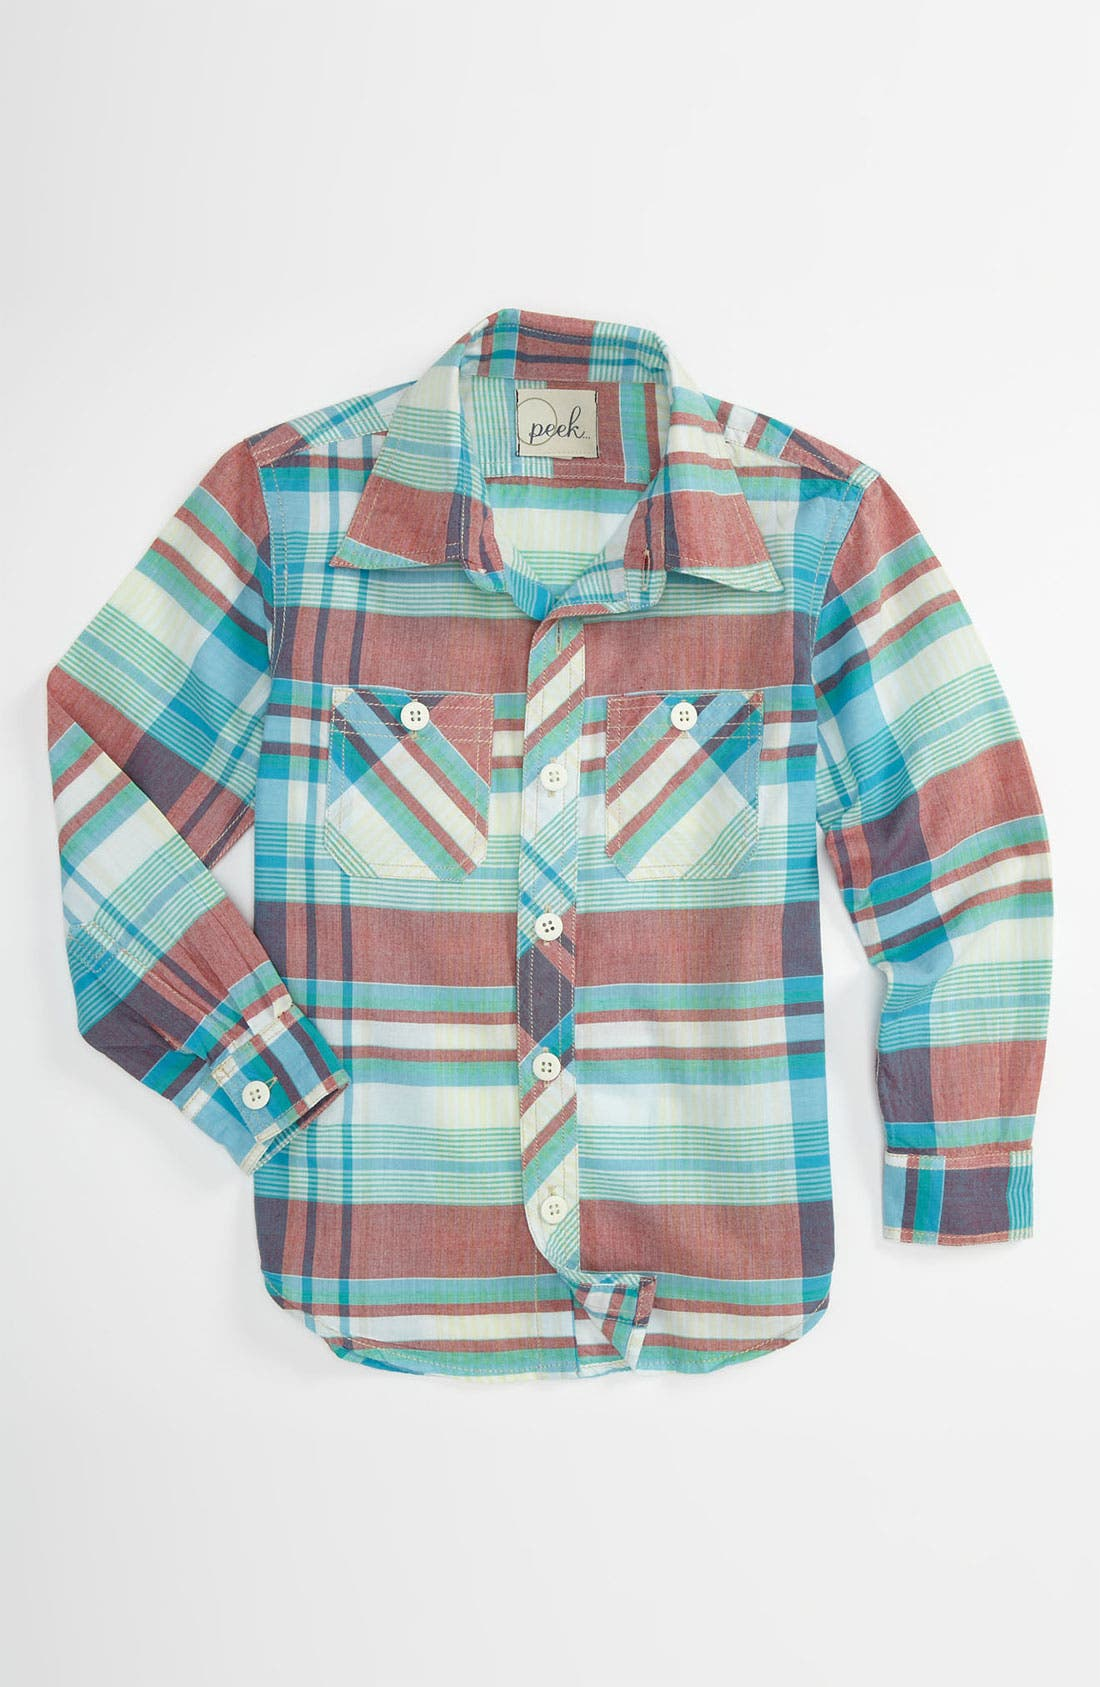 Main Image - Peek Plaid Utility Shirt (Toddler, Little Boys & Big Boys)